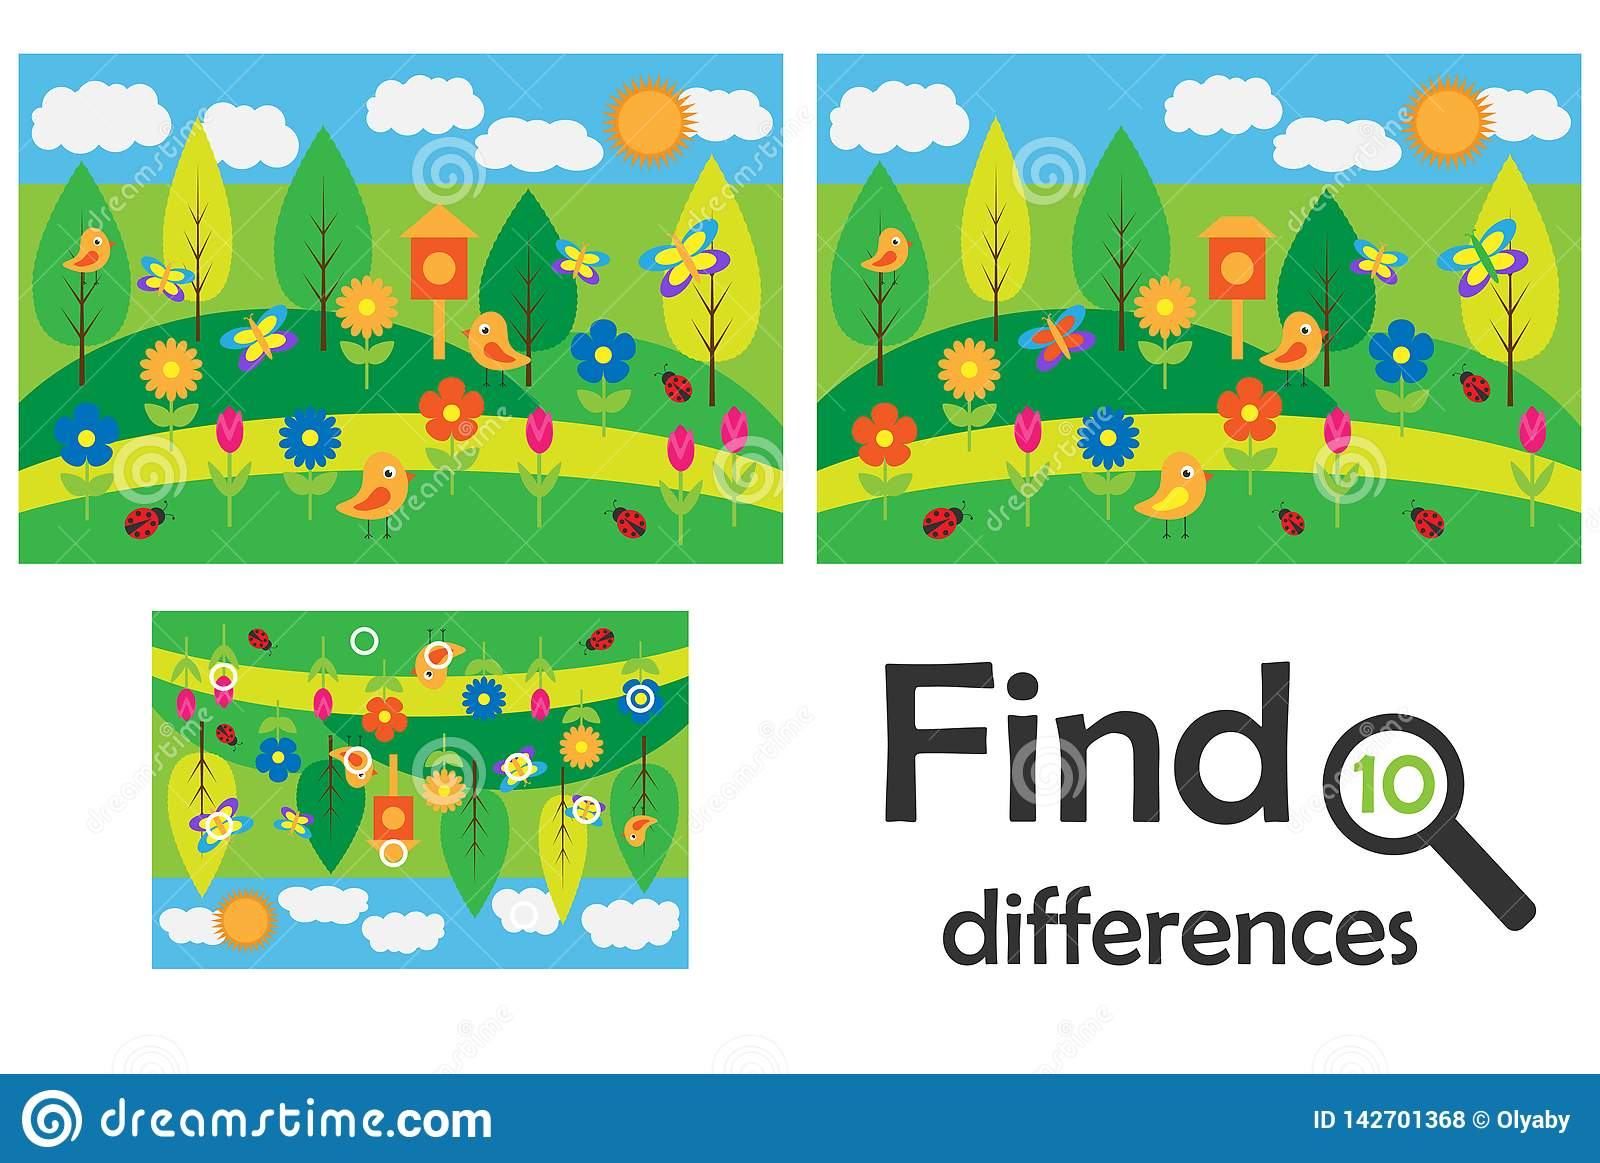 Find 10 Differences Game For Children Spring Cartoon